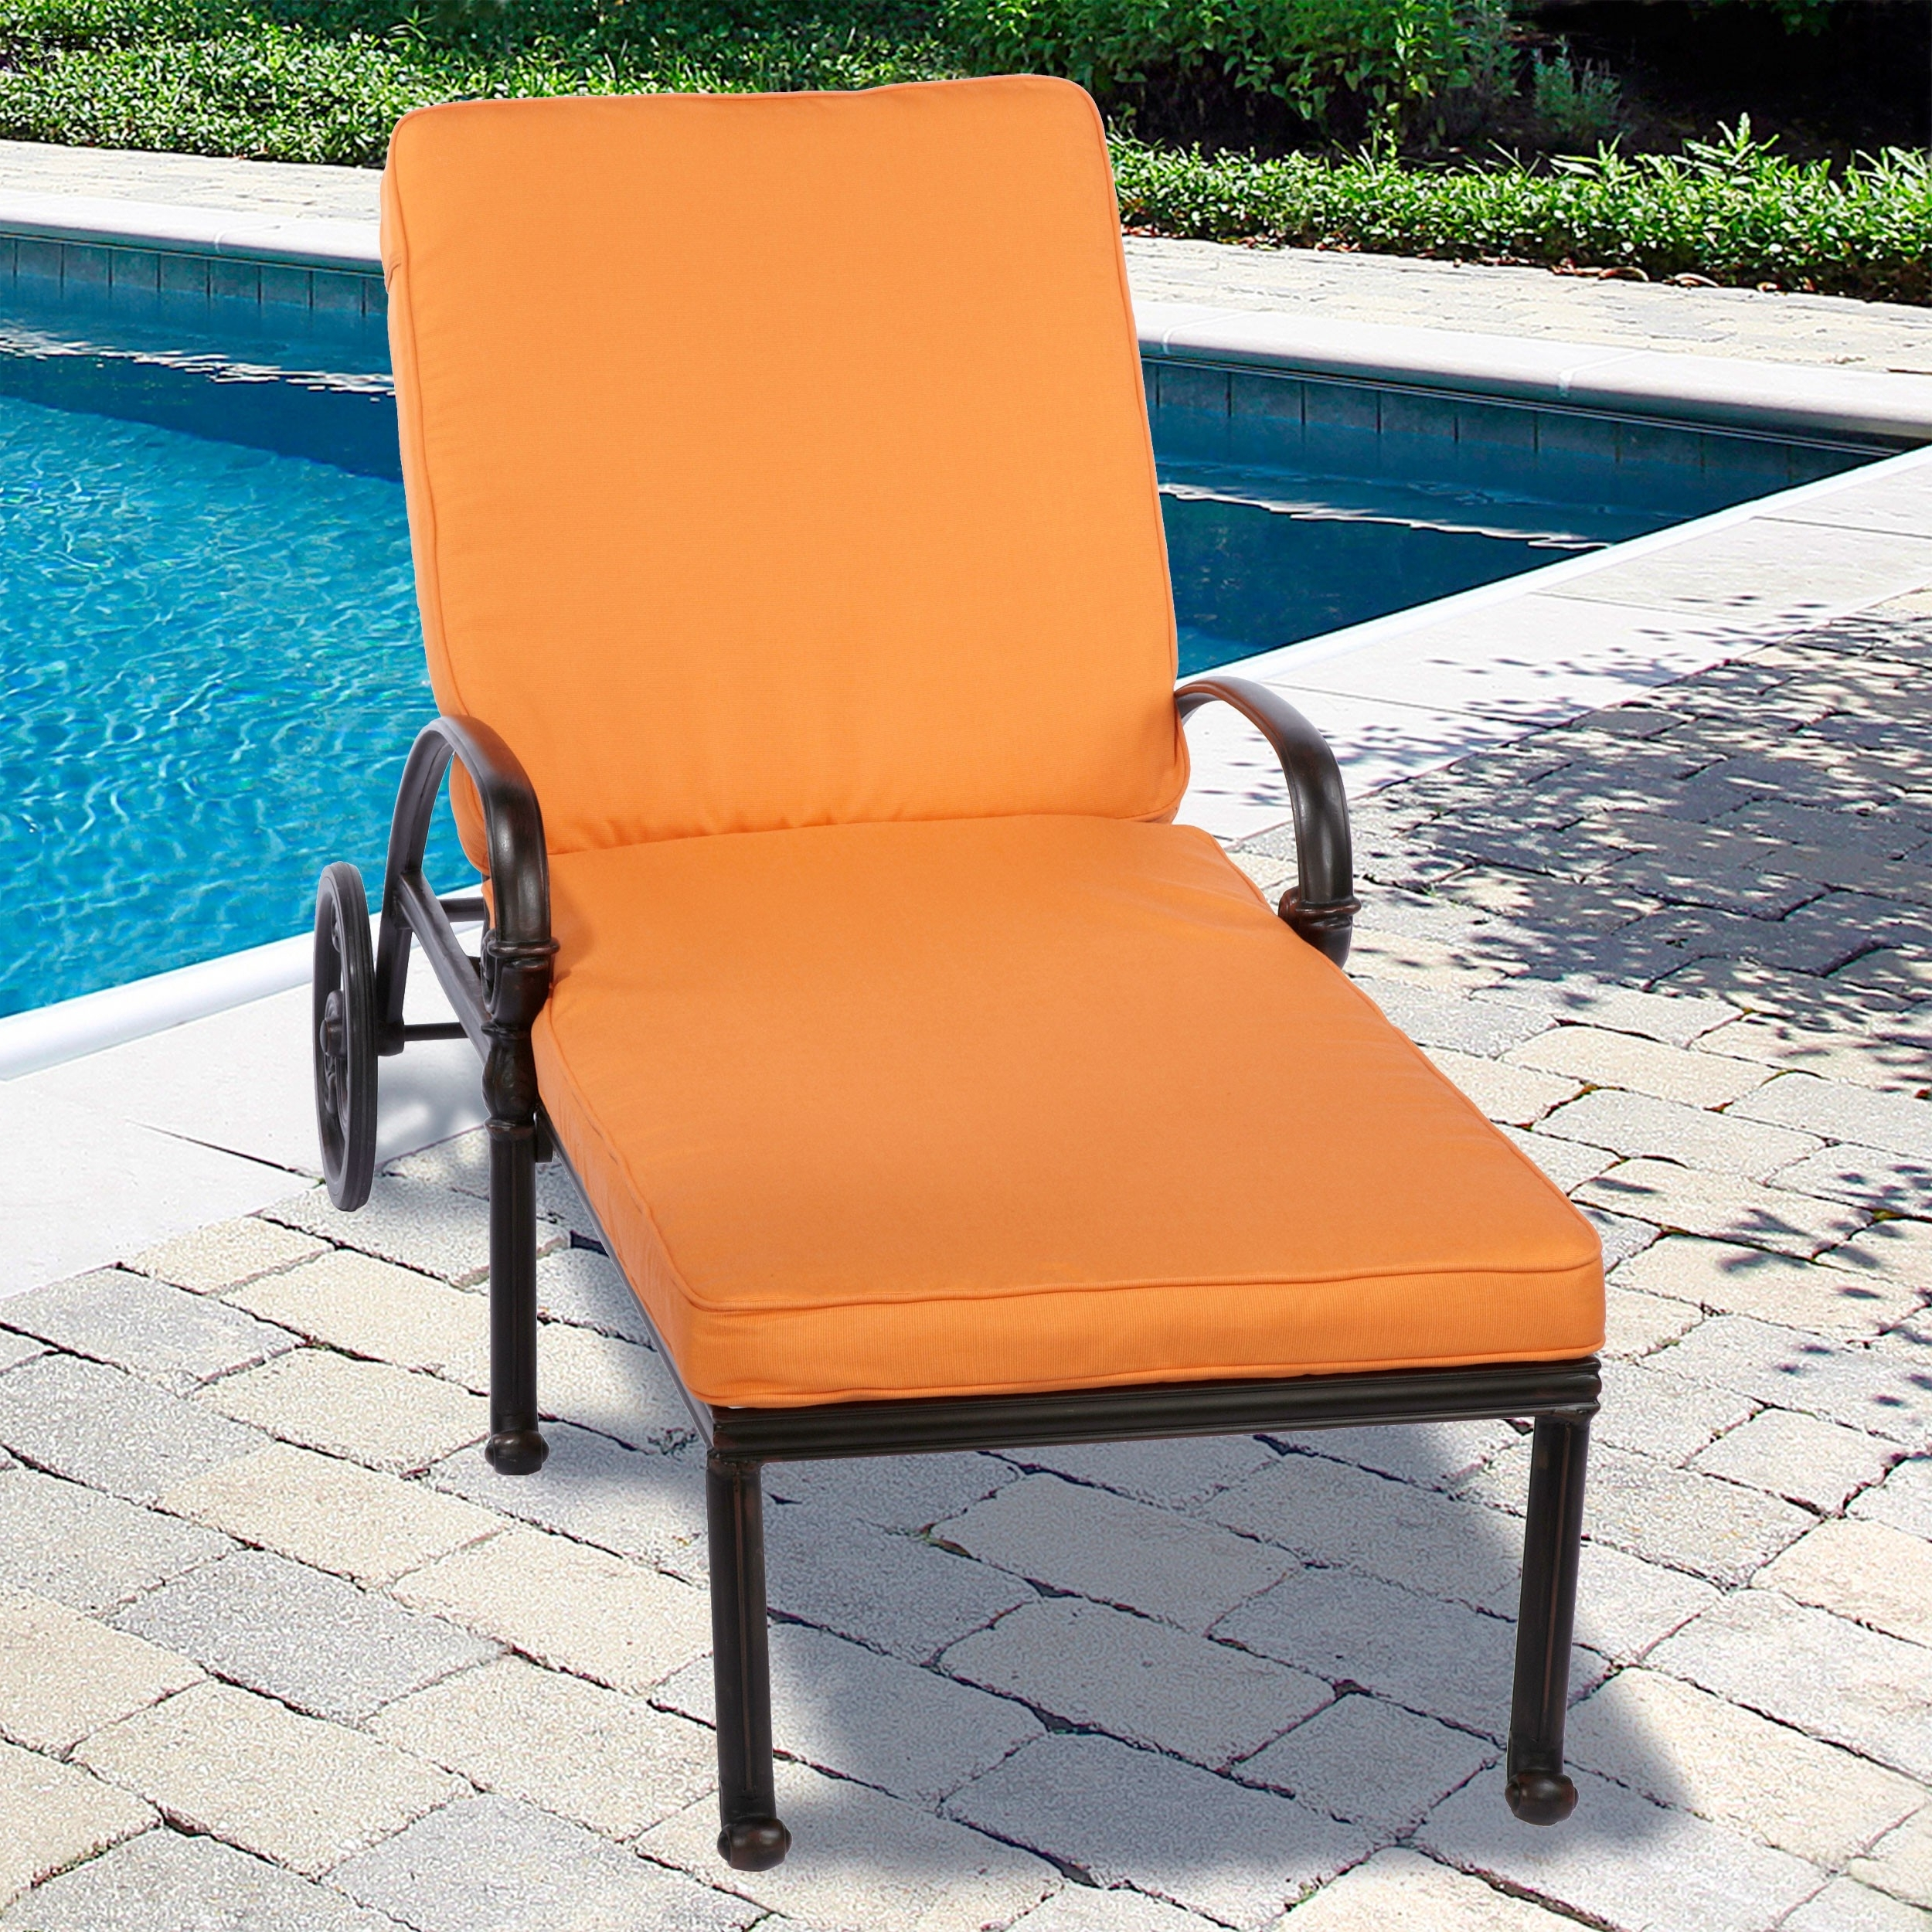 Contemporary Outdoor Chaise Lounge Chairs With Regard To Recent Convertible Chair : Outdoor Furniture Cushions Clearance Outside (View 7 of 15)